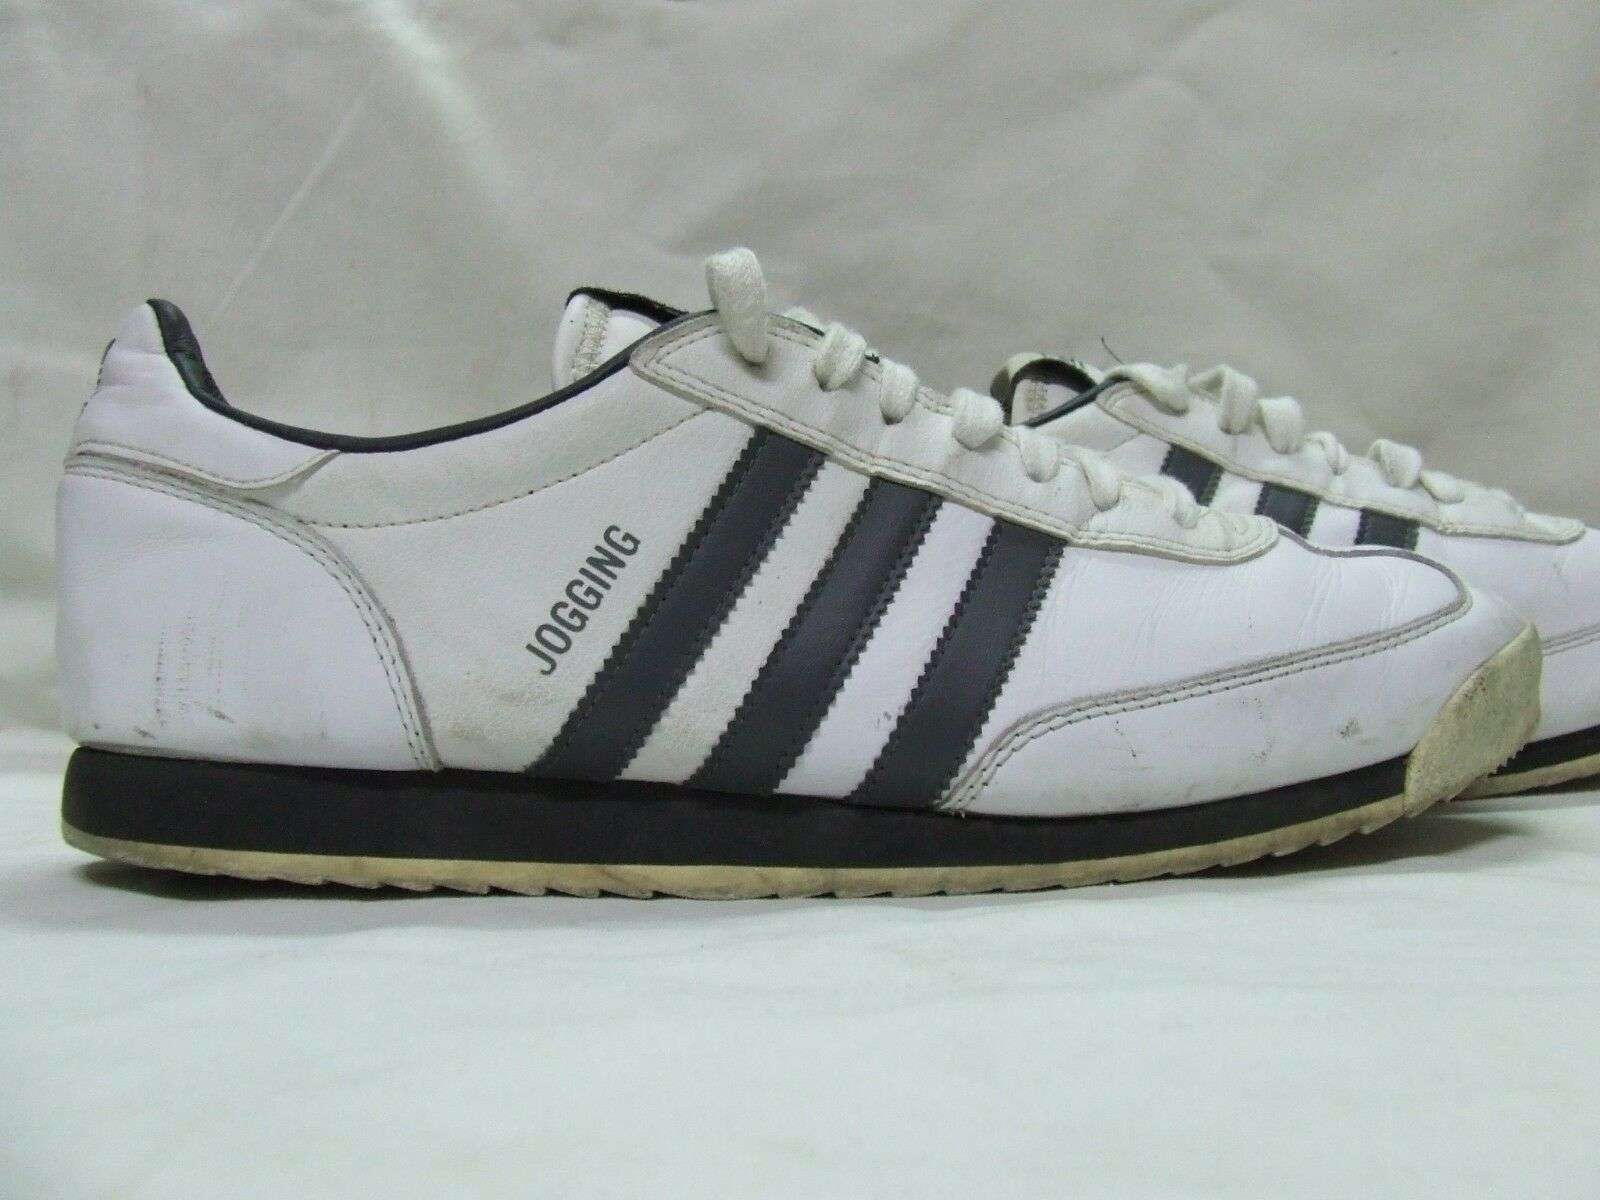 Vintage Taille Chaussures Homme Adidas Cwxf6w7q Femme